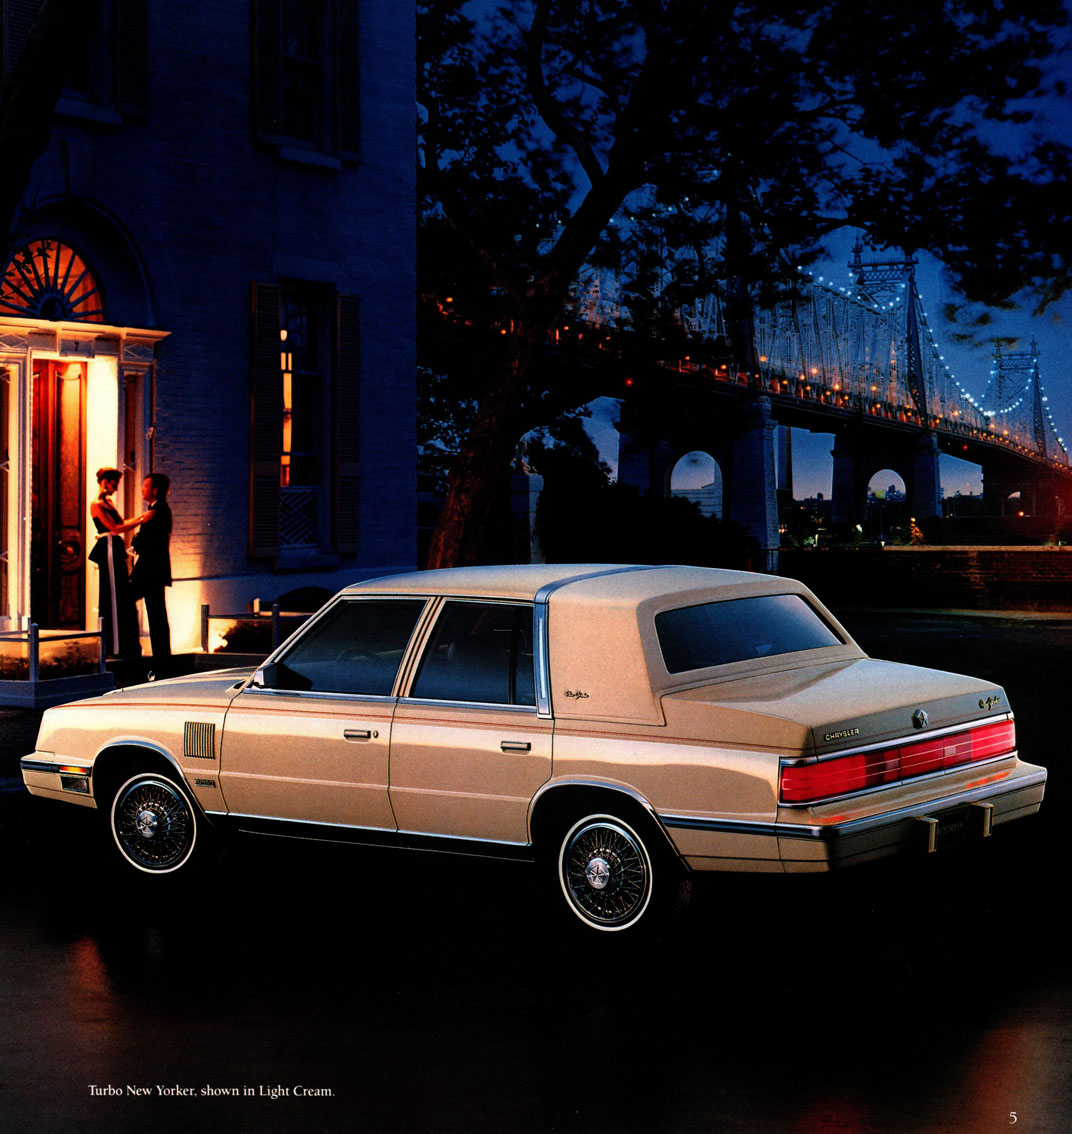 Curbside Classic: 1986 Chrysler New Yorker – Just A Little